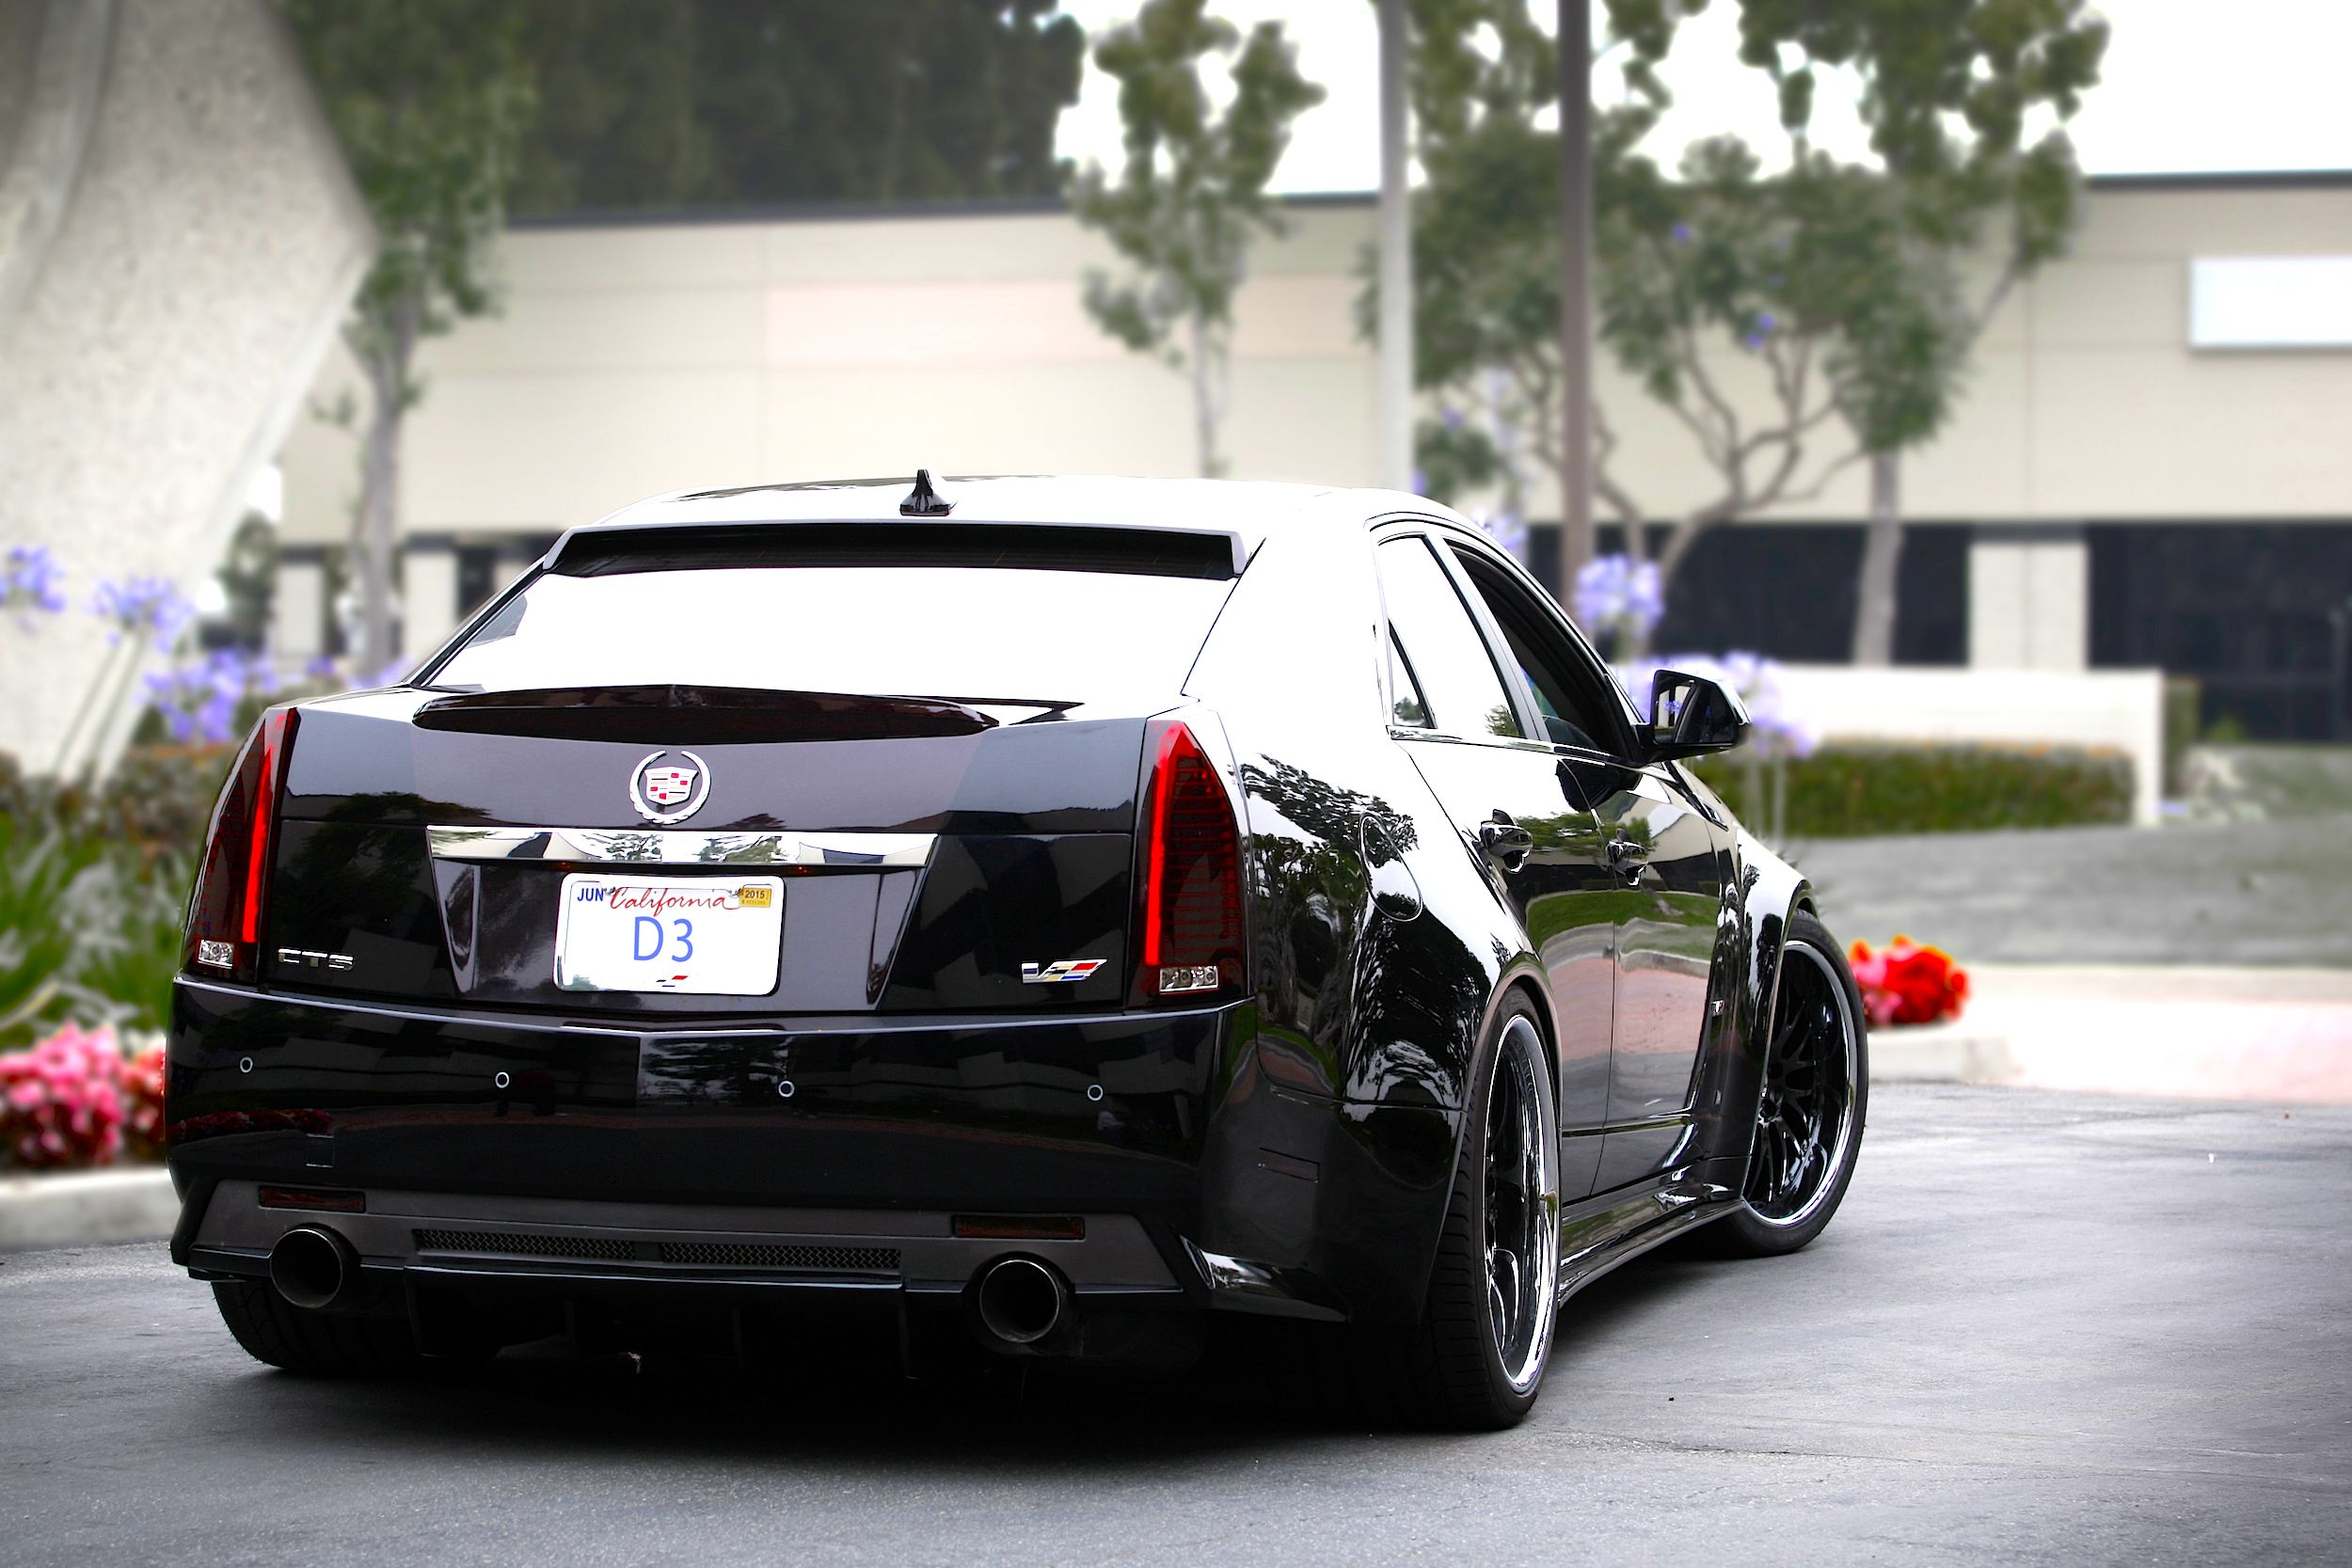 Widebody Cadillac Cts V Sedan Cars Pinterest Sedans